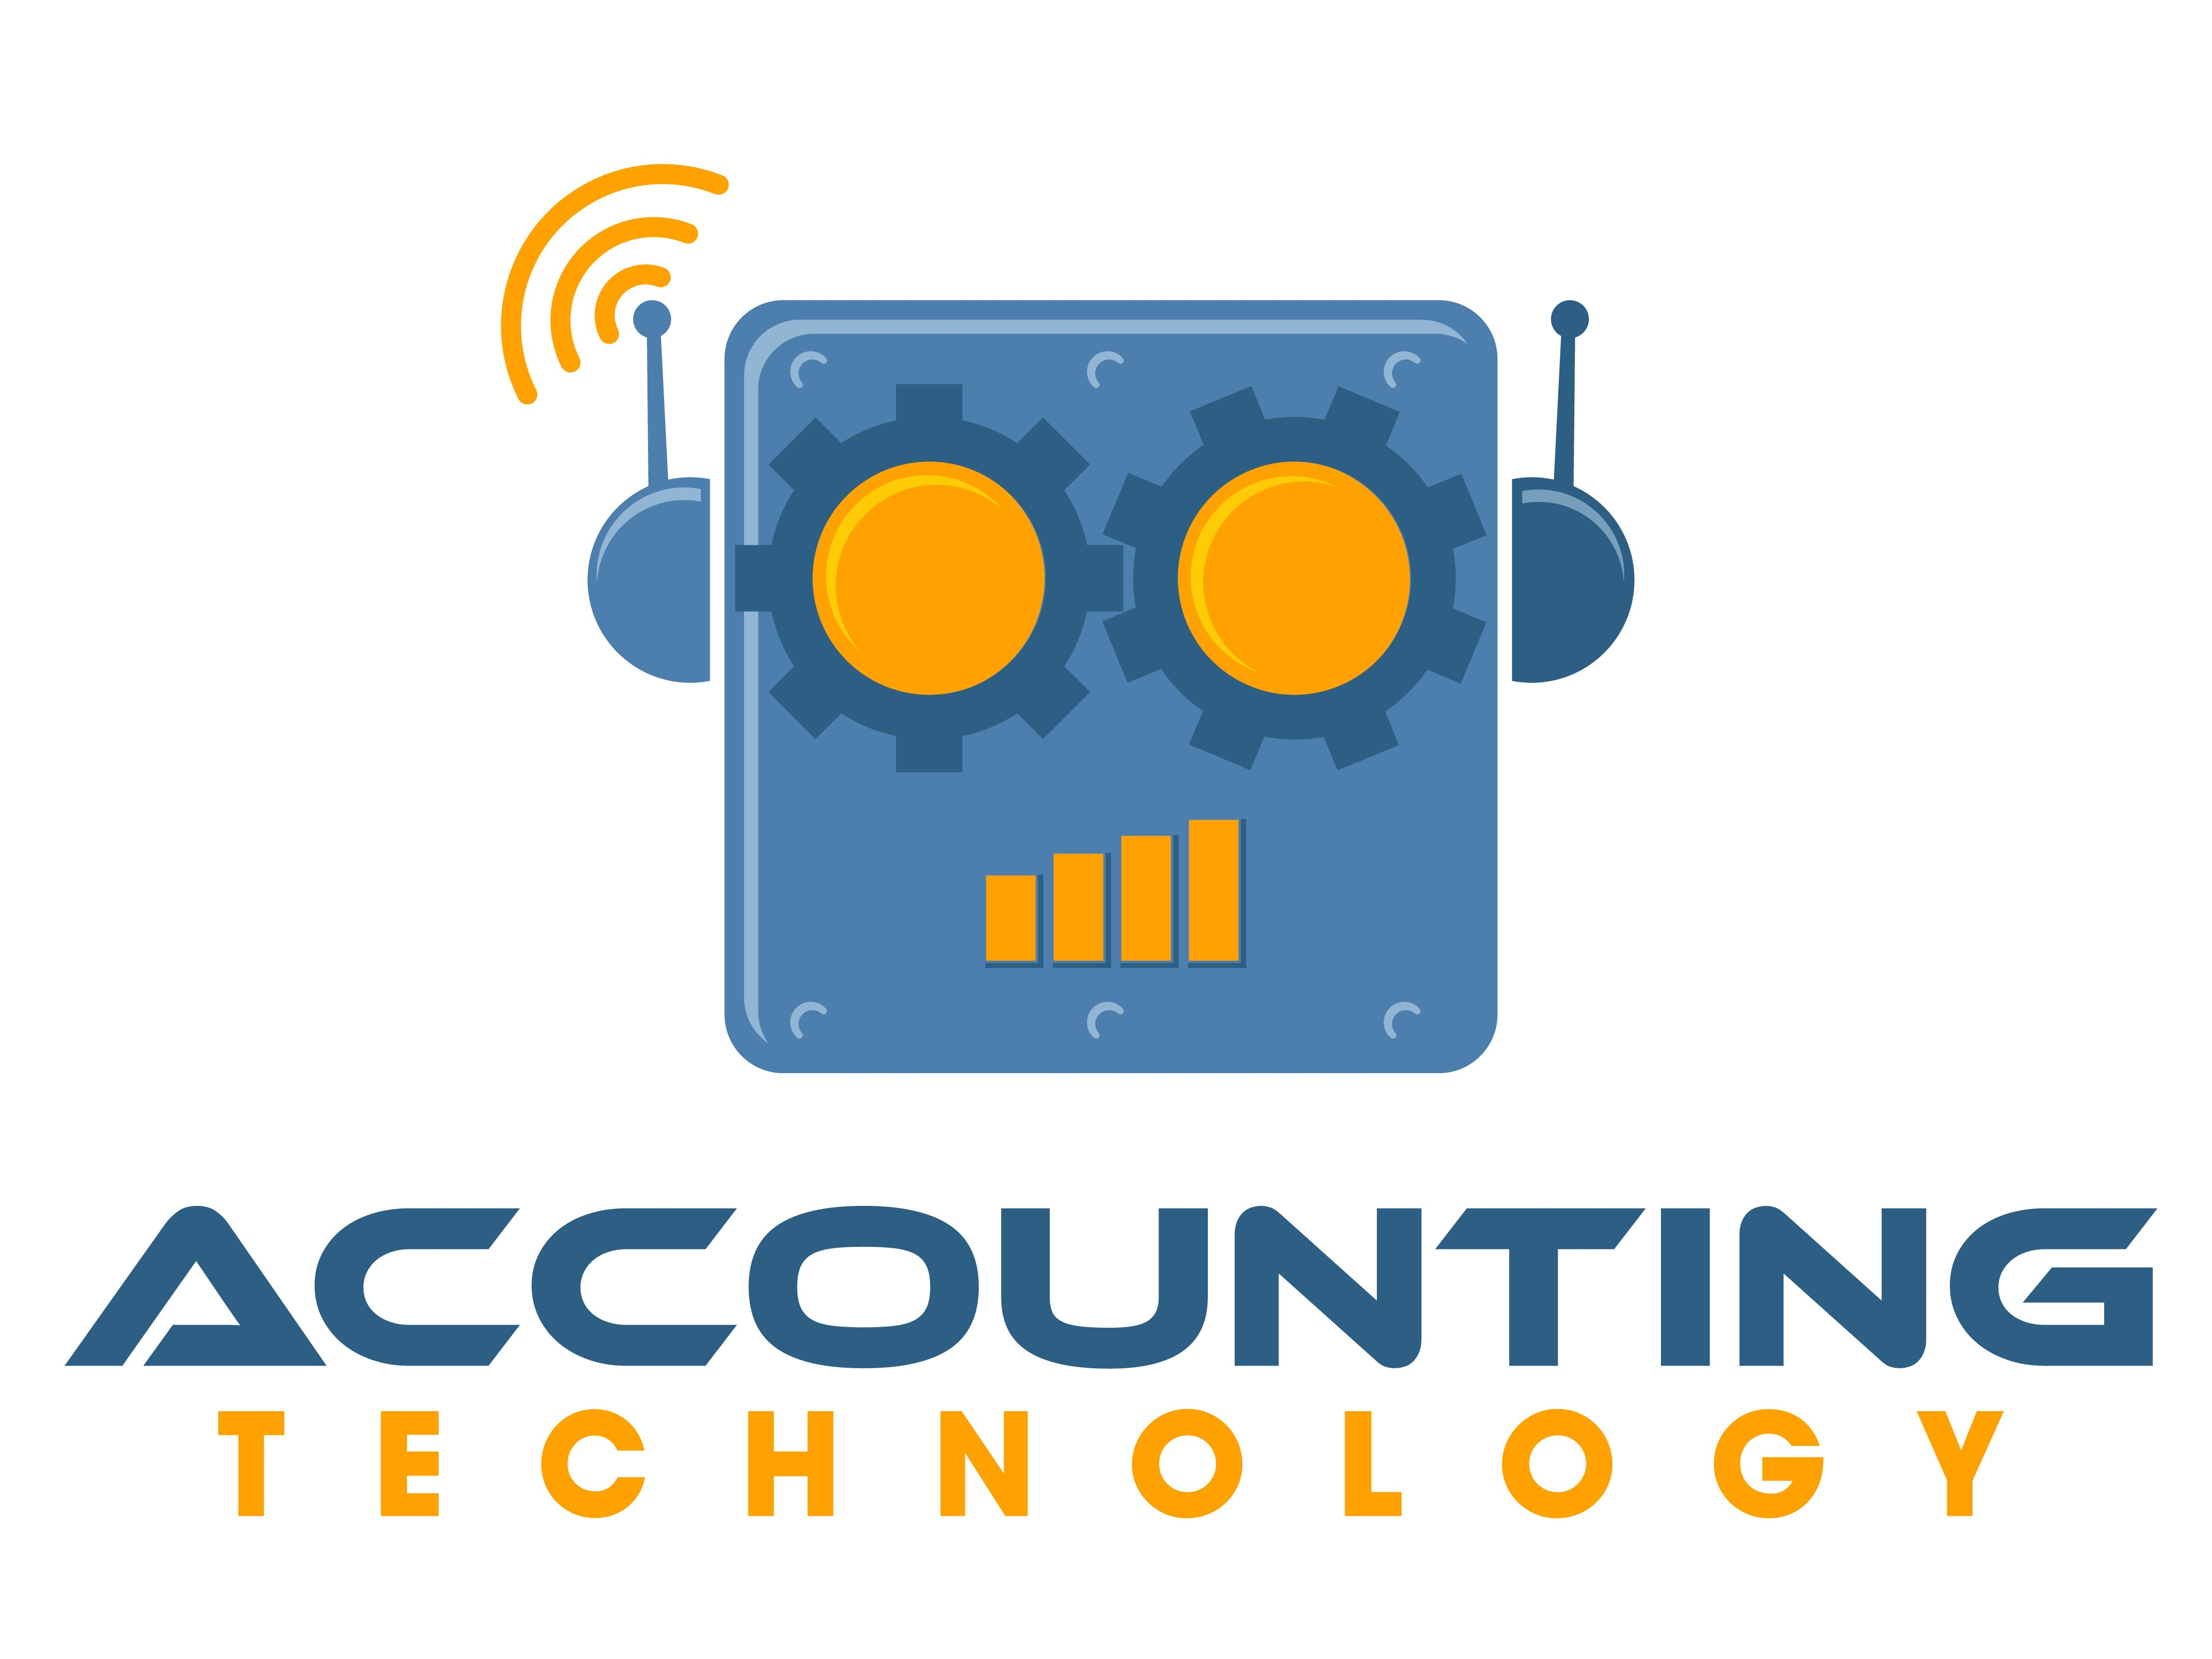 Help a Computer/Accounting Geek Create an Accounting Technology Logo